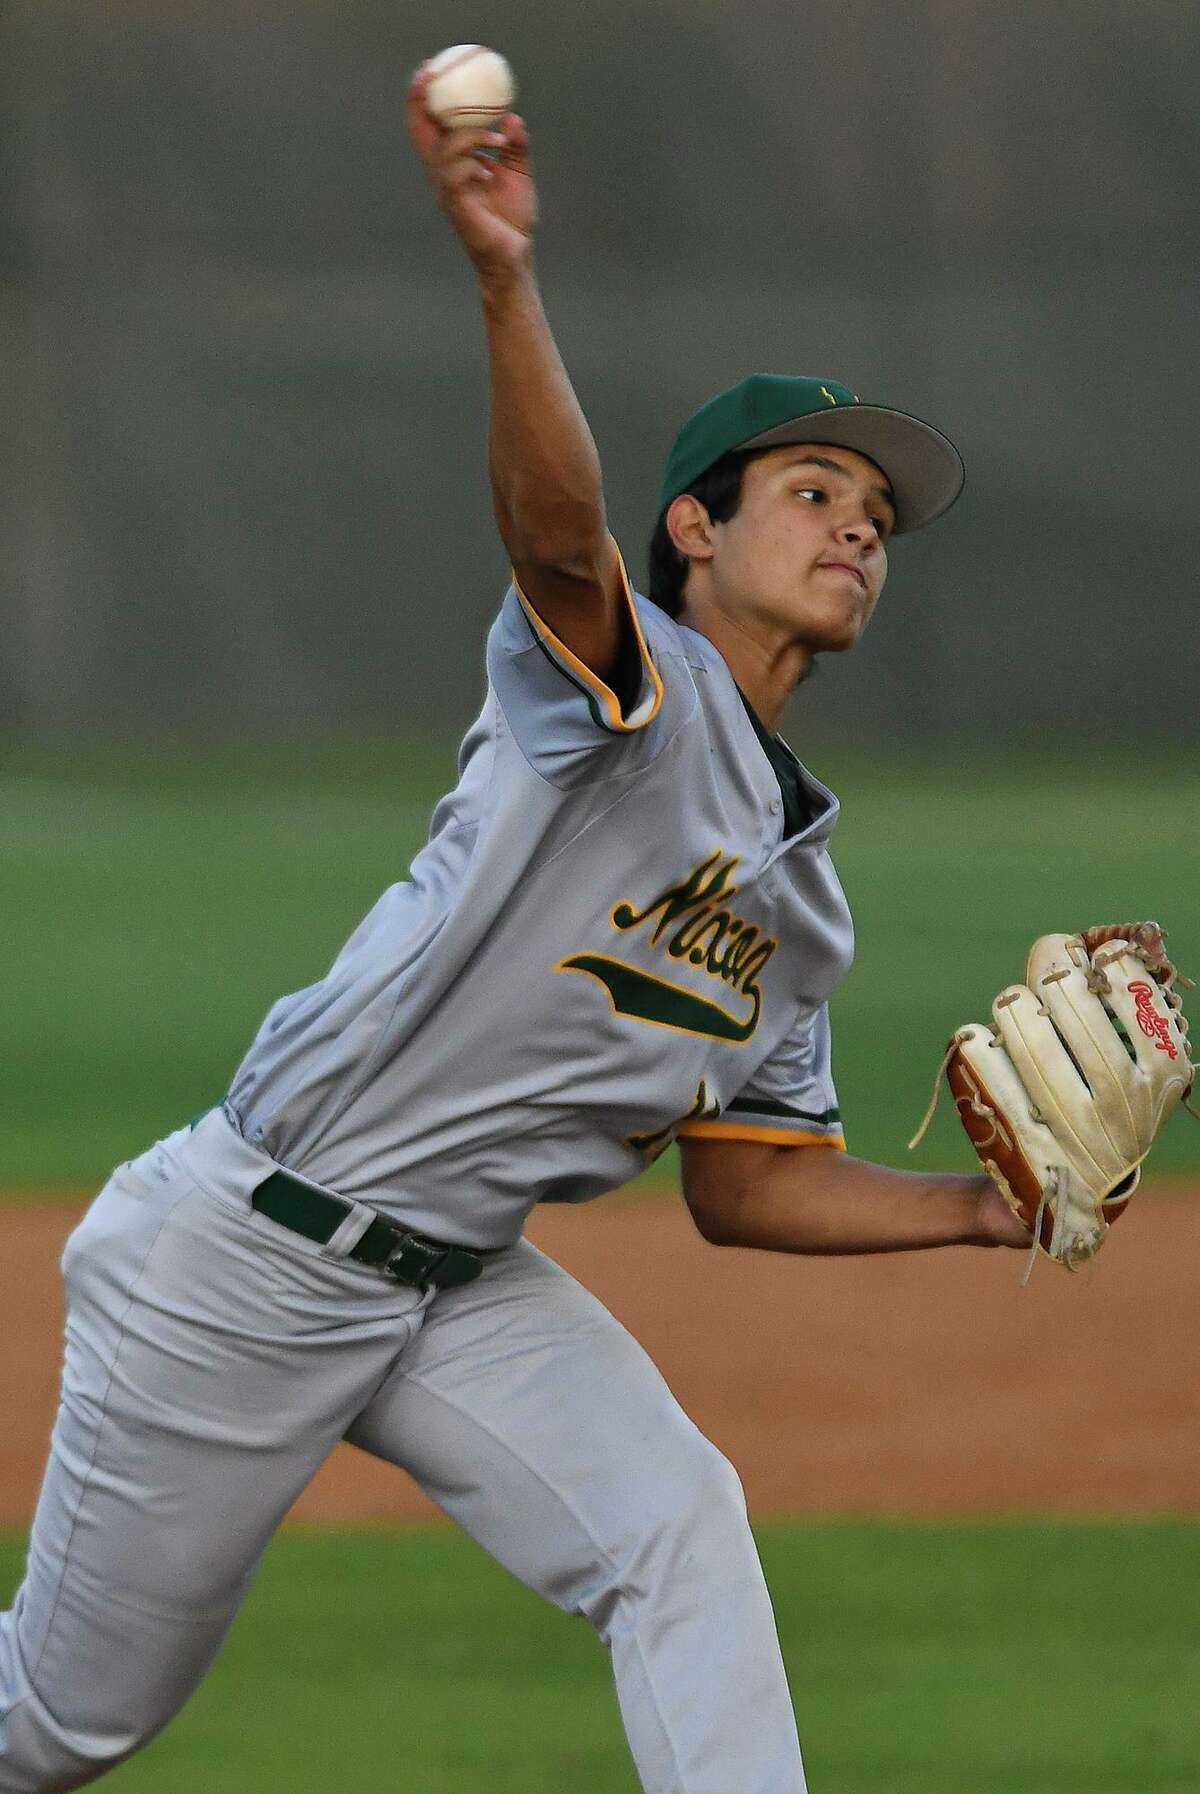 Joey Gamez recorded five strikeouts in six innings Wednesday as the Mustangs fell 4-1 at Eagle Pass. Gamez also had two walks in three plate appearances.